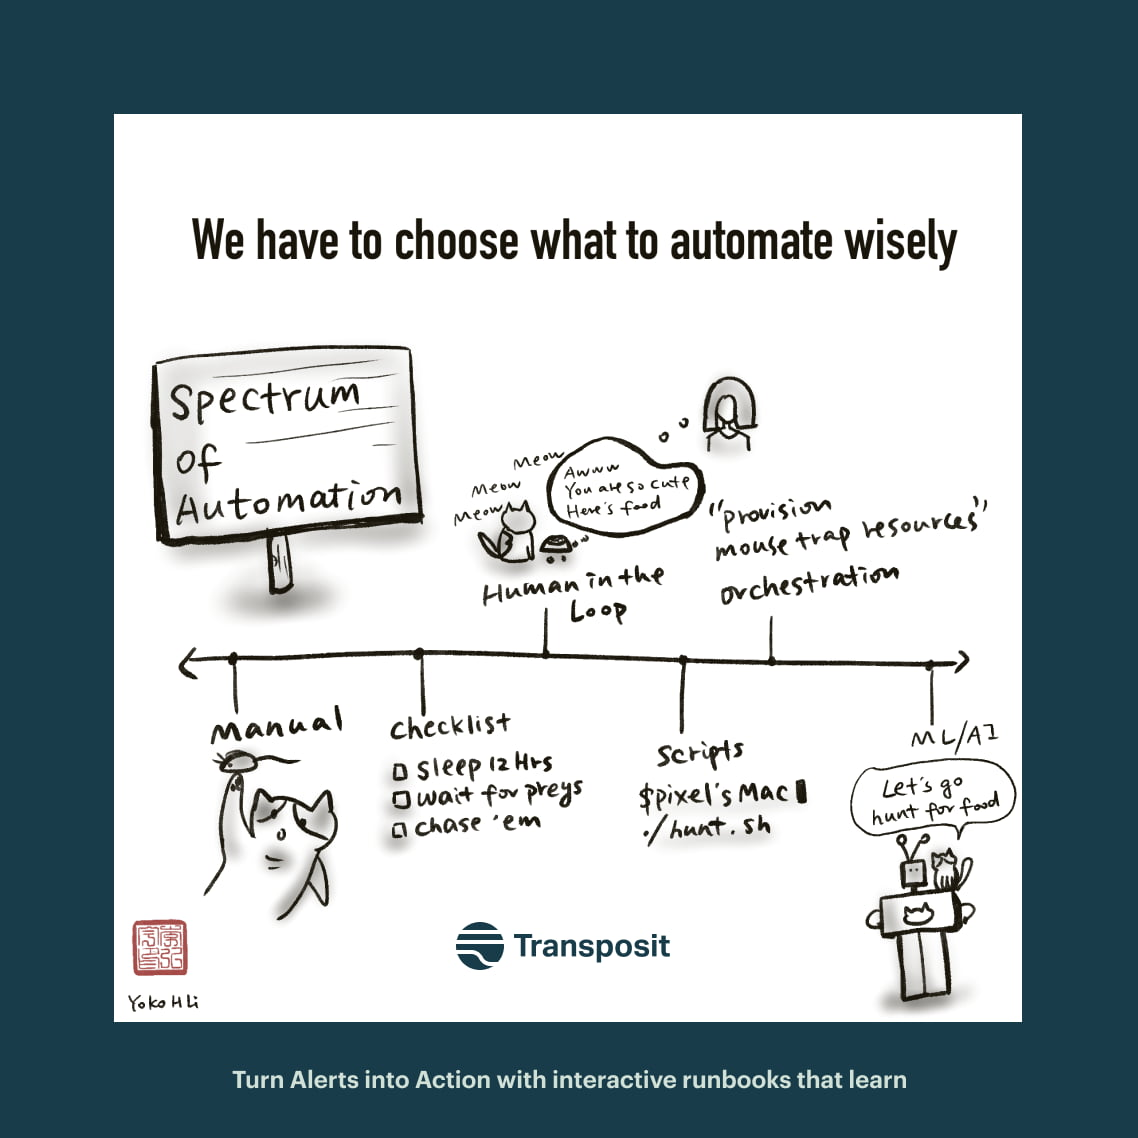 We have to choose what to automate wisely. Spectrum of Automation with manual, checklist, Human-in-the-Loop, orchestration, ML/AI.